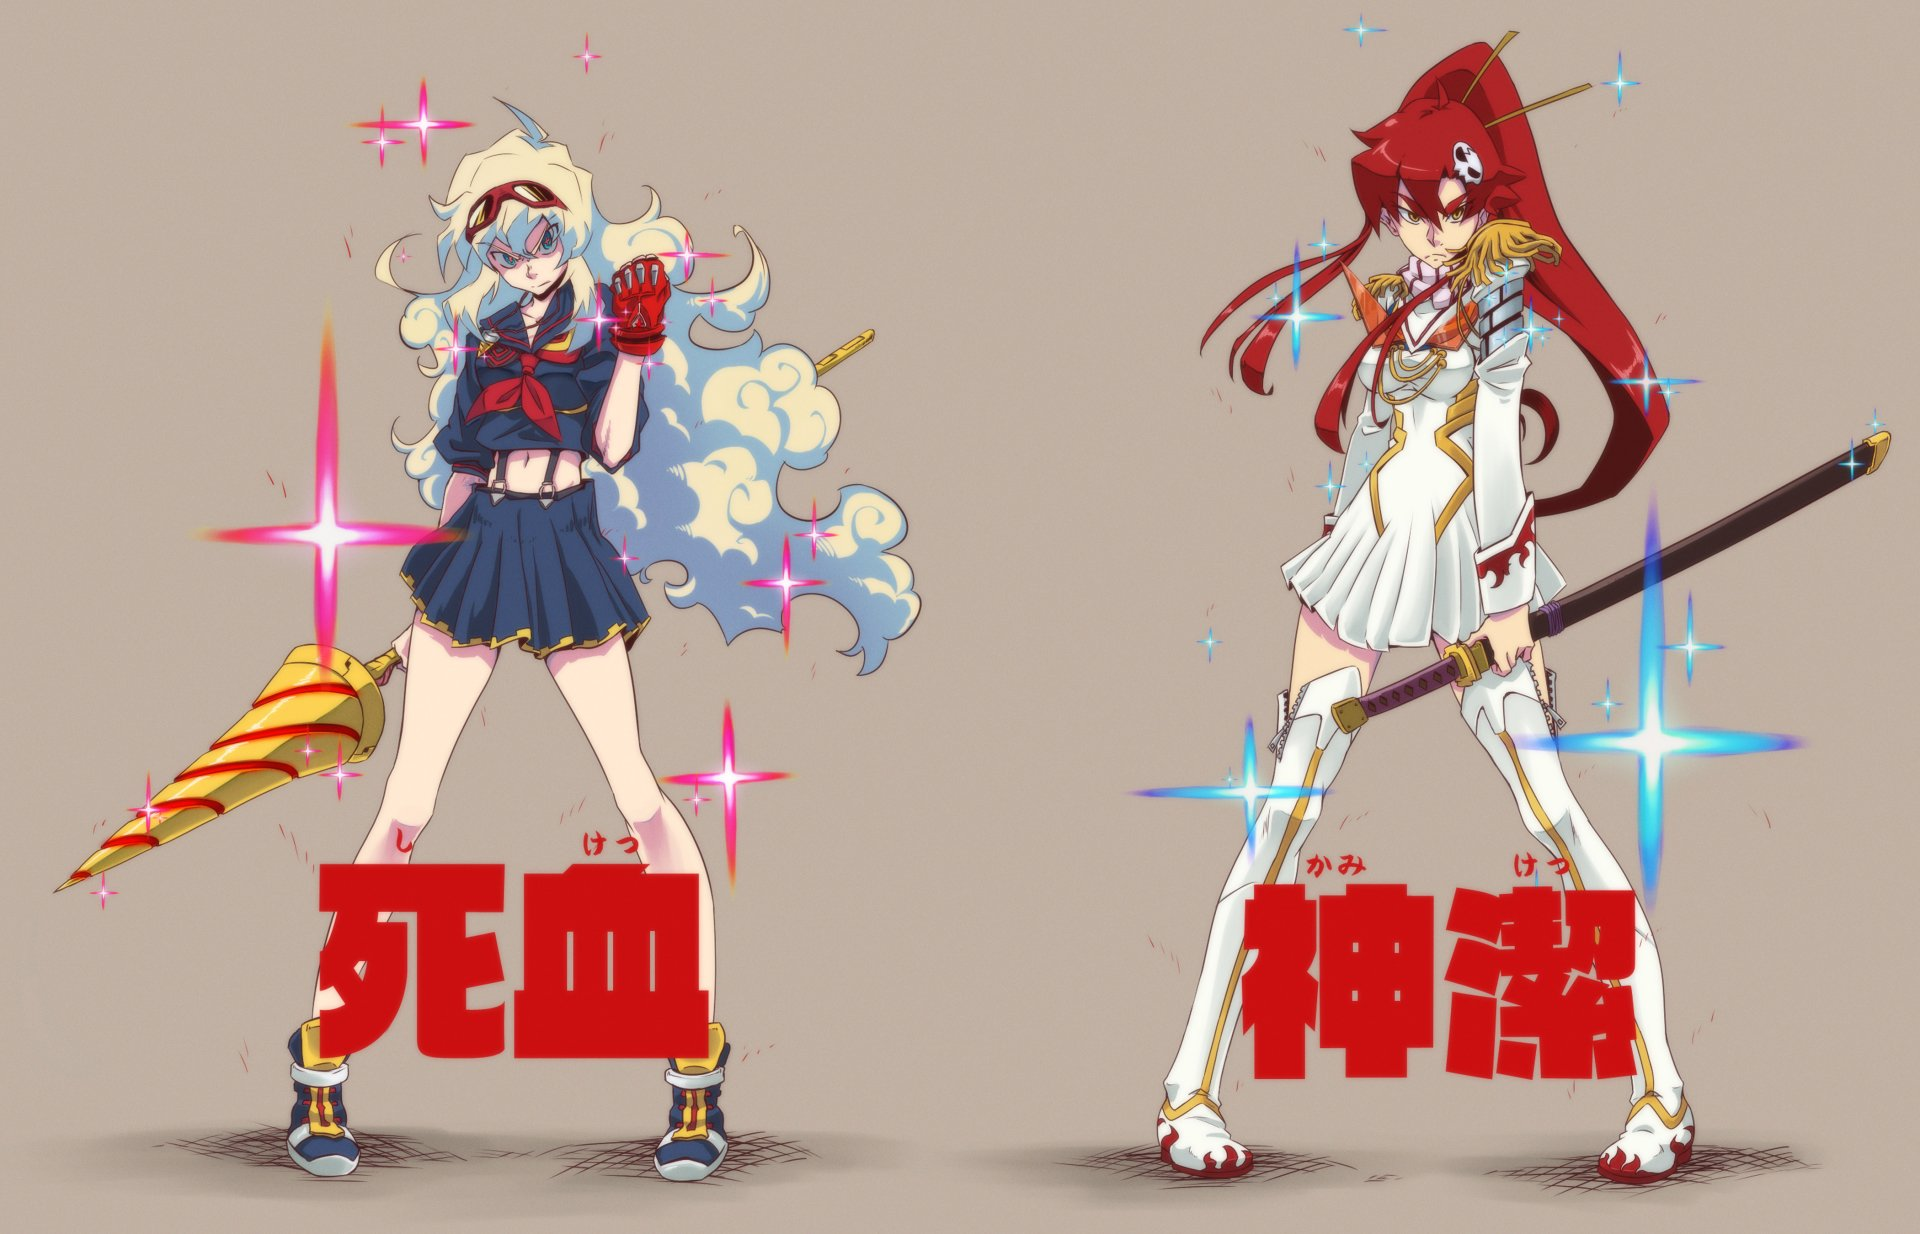 Anime - Crossover  Kill La Kill Gurren Lagann Yoko Littner Nia Teppelin Wallpaper